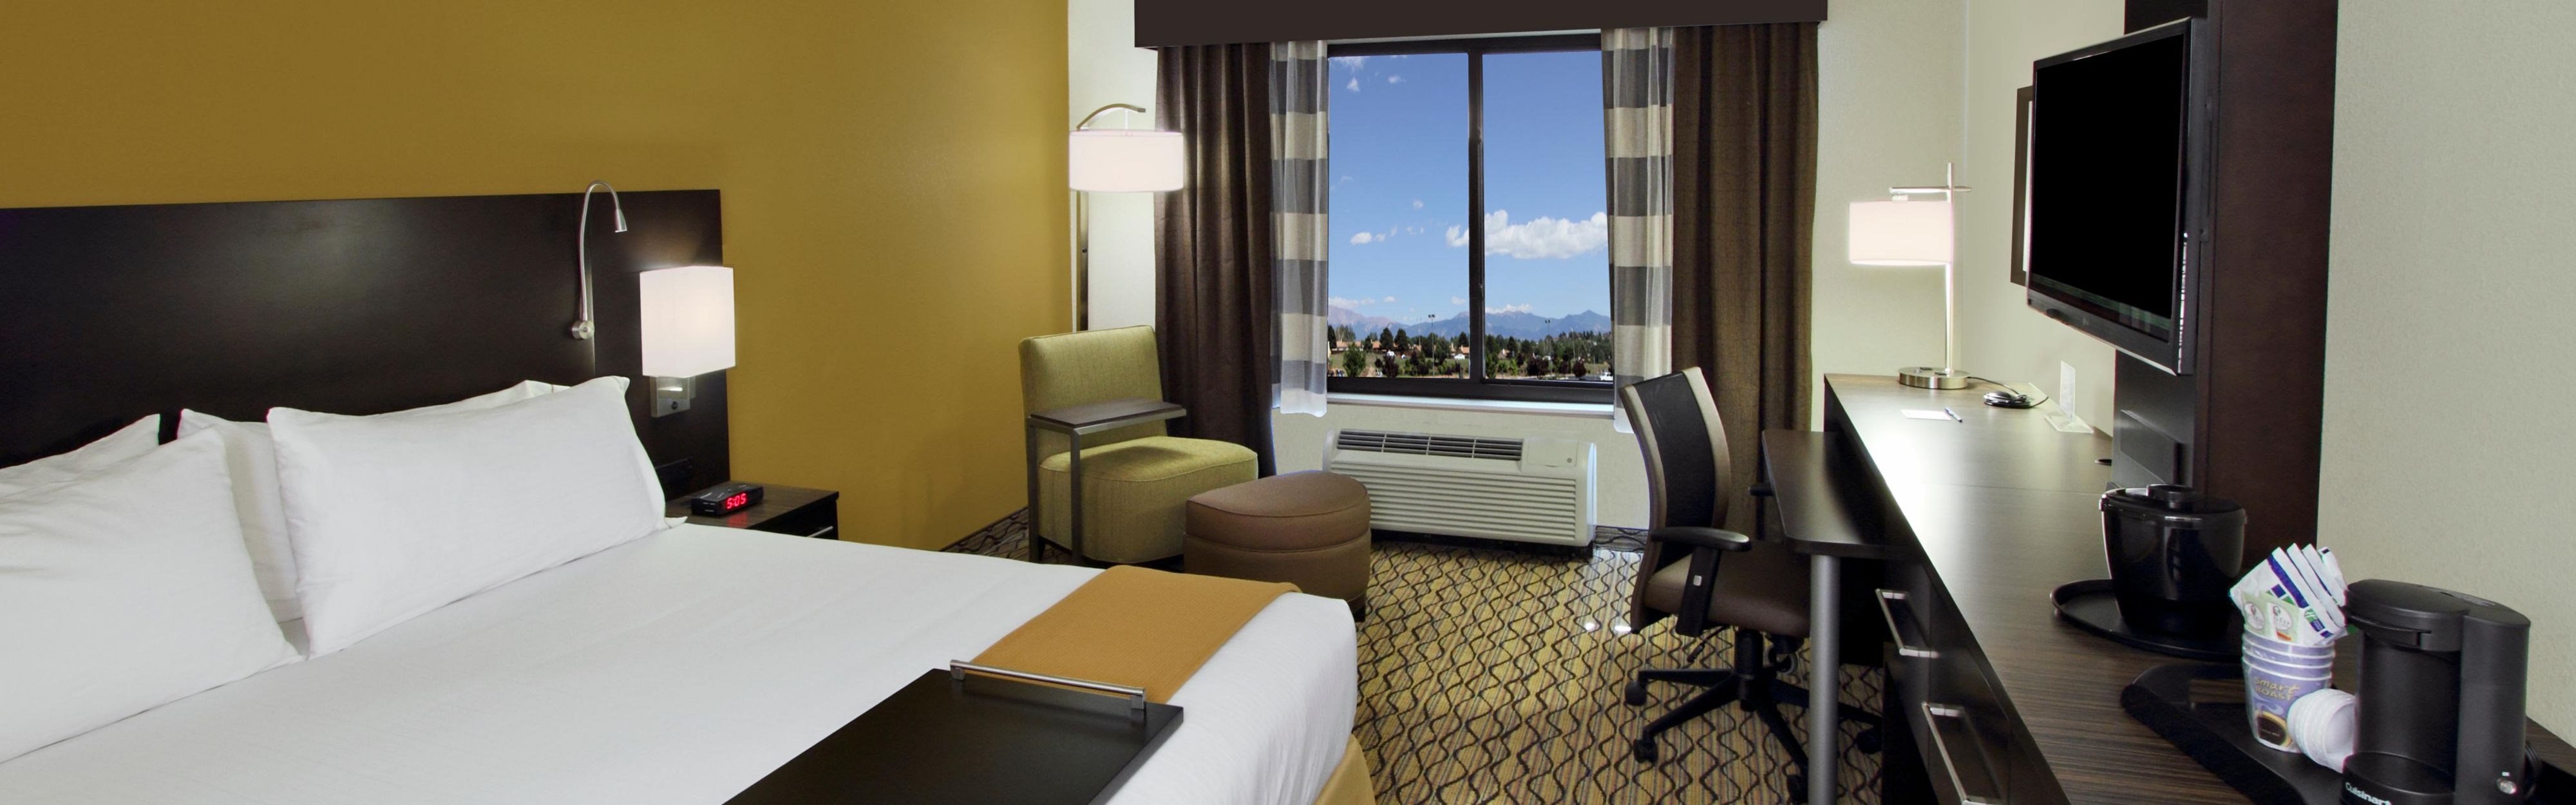 Holiday Inn Express & Suites Colorado Springs-First & Main image 1